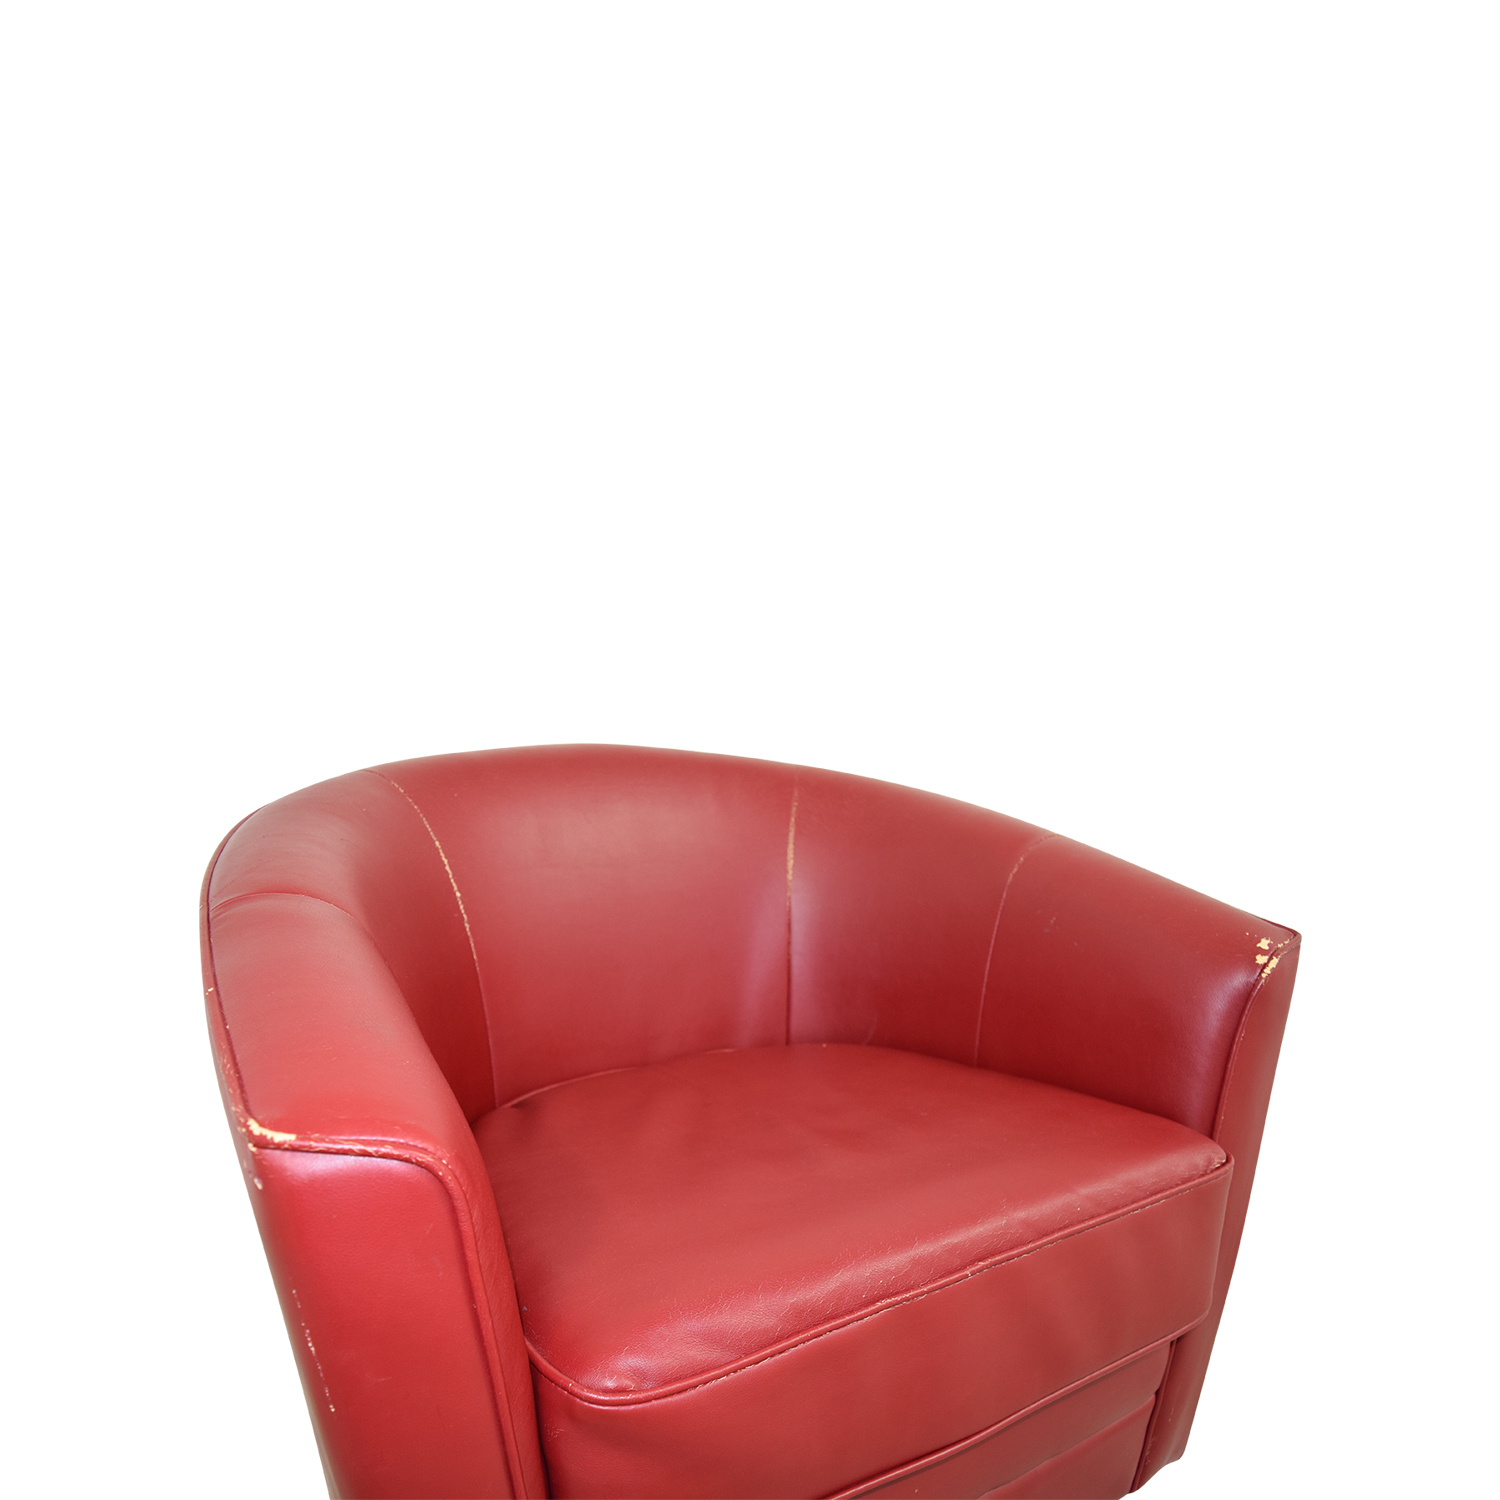 90 Off Bob S Furniture Bob S Furniture Red Leather